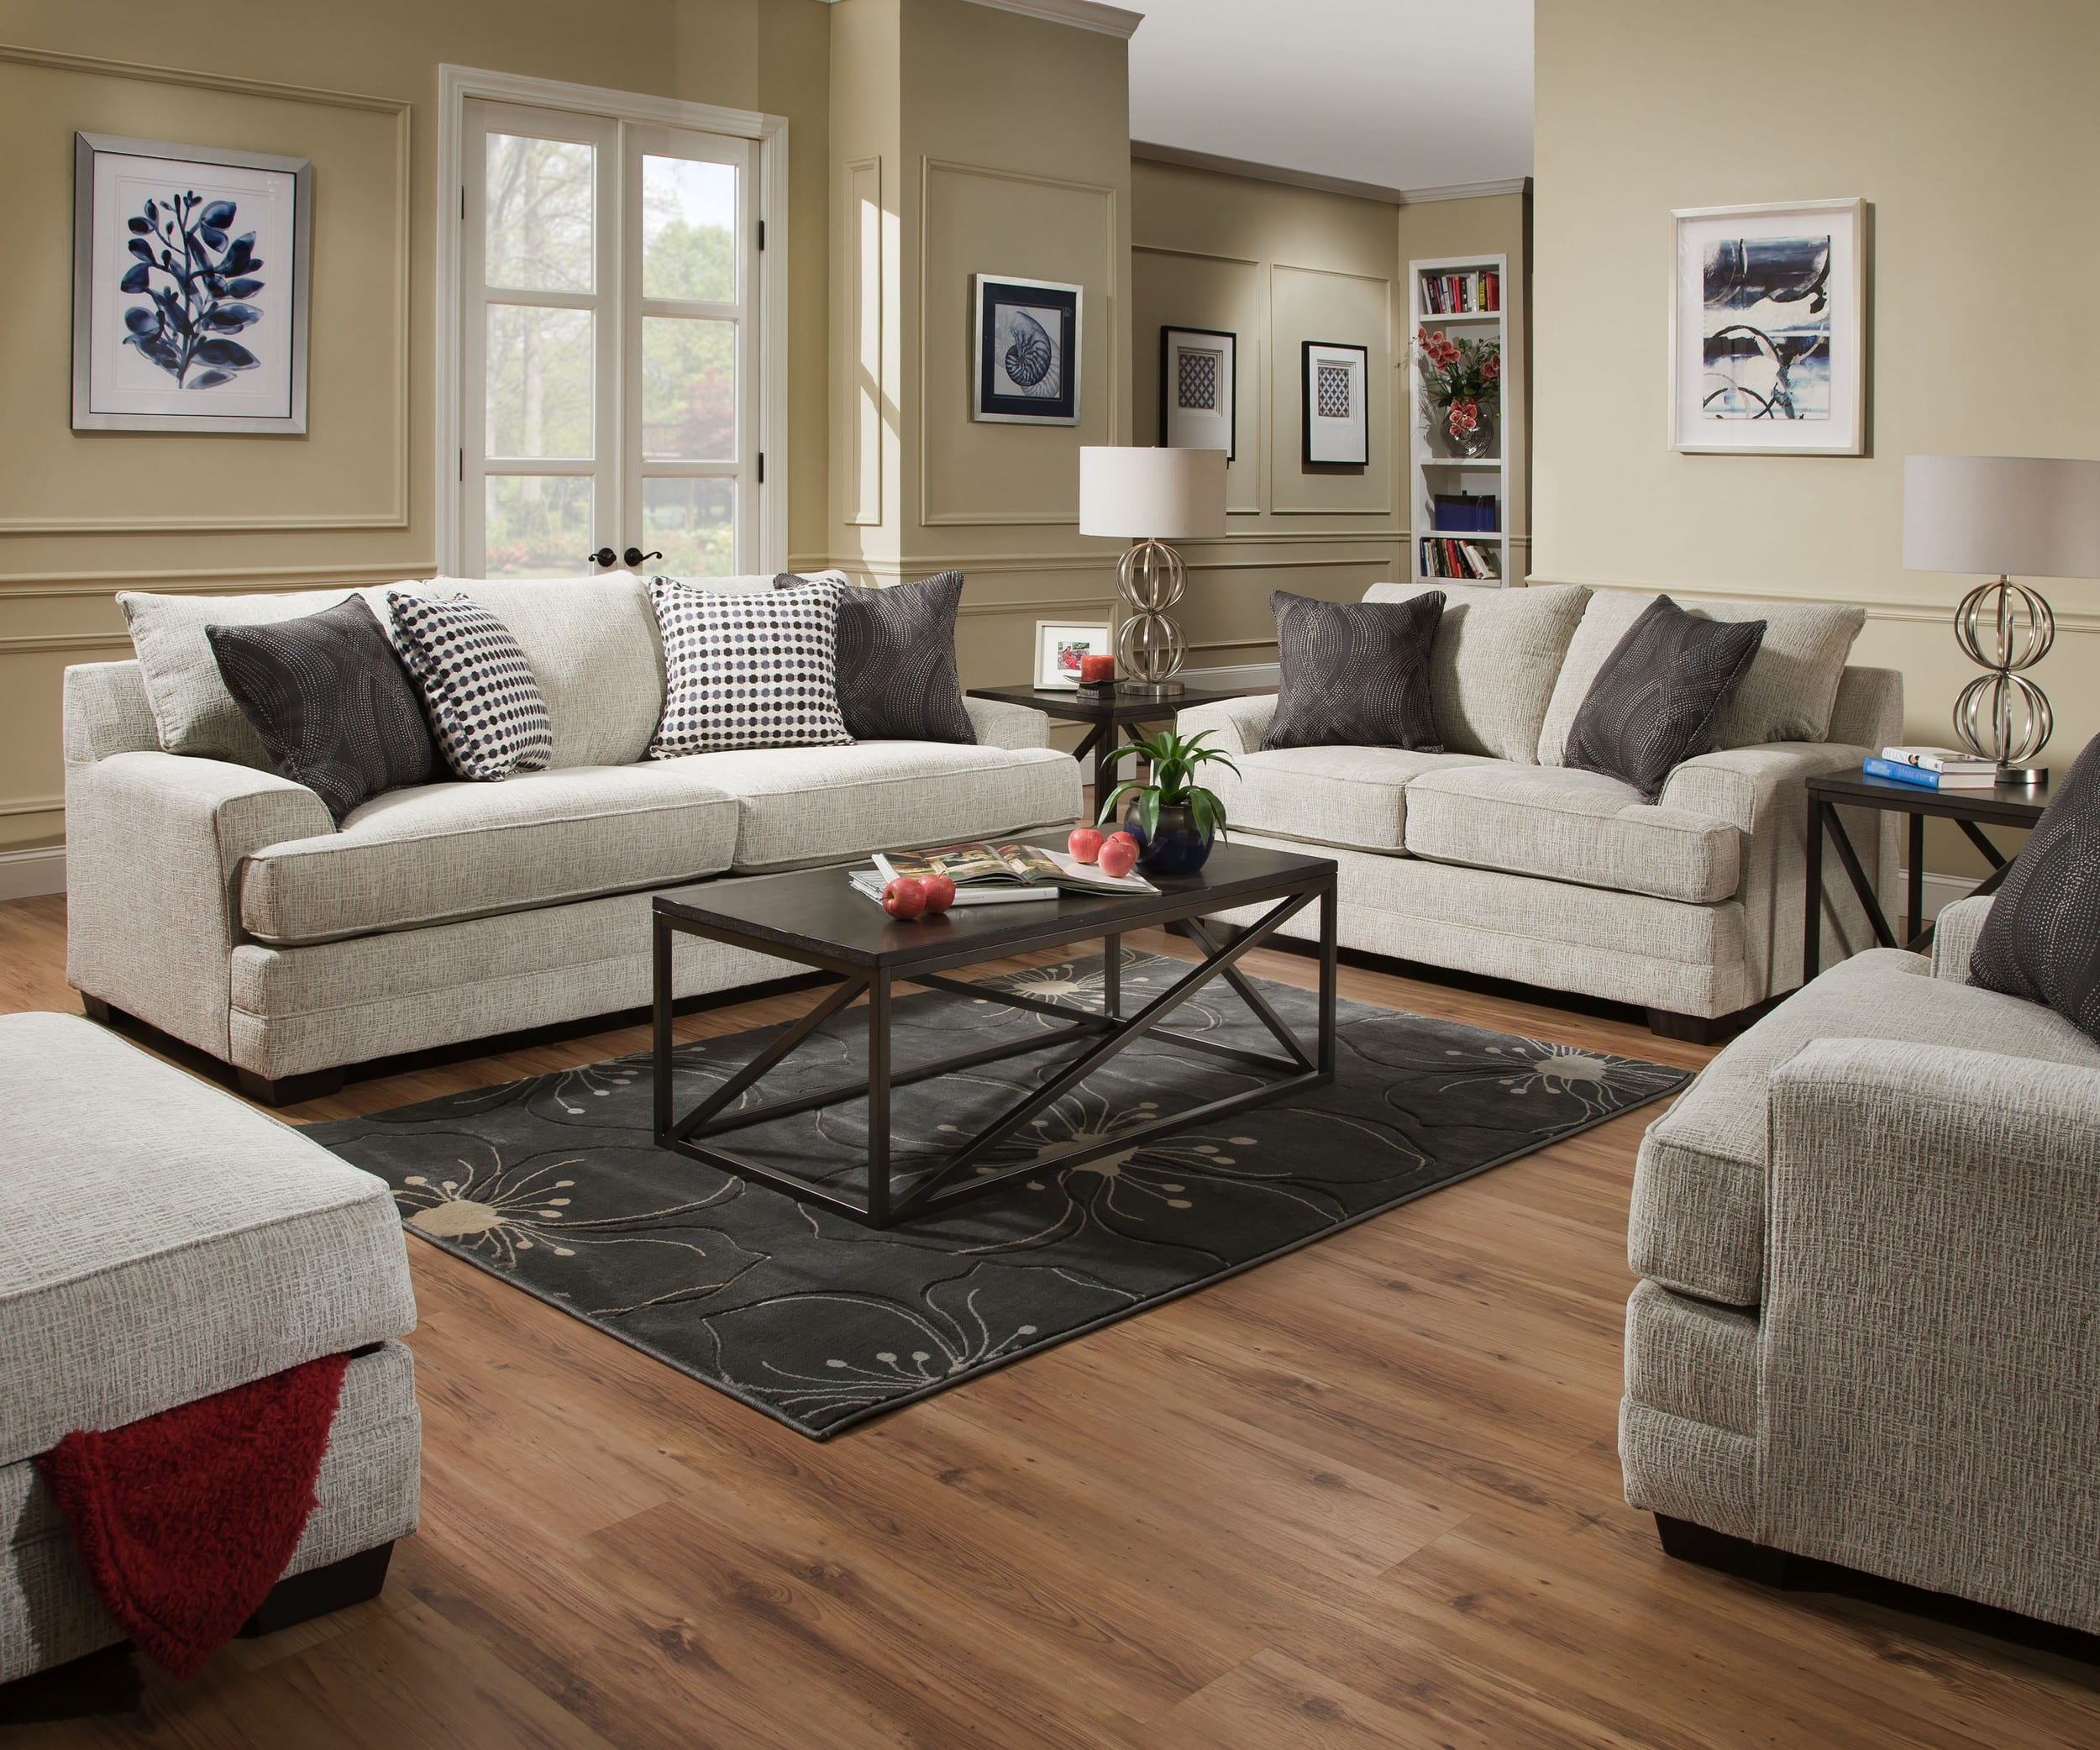 Simmons Upholstery 6548br 03 Dillon Driftwood 6548br 02 Dillon Driftwood 6548br 01 Dillon Driftwood intended for 15 Awesome Ways How to Makeover Cheap 3 Piece Living Room Set